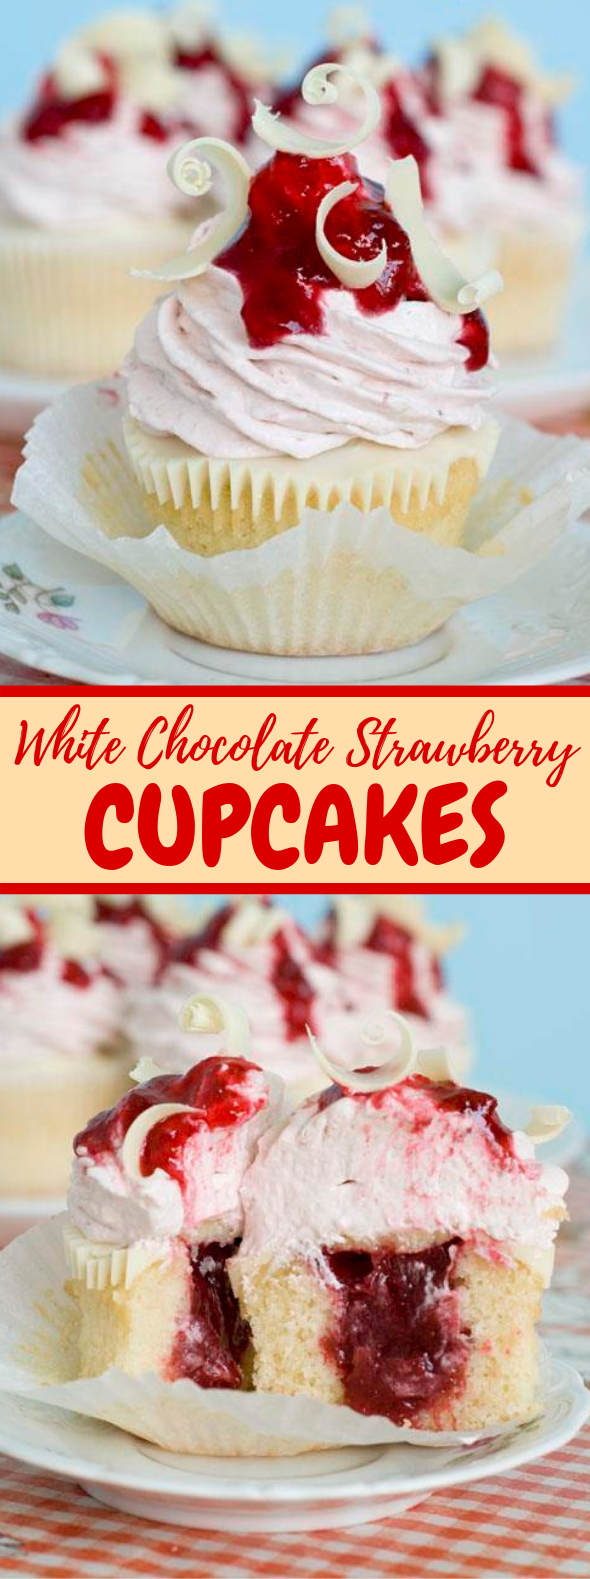 White Chocolate Strawberry Cupcakes #dessert #cupcake